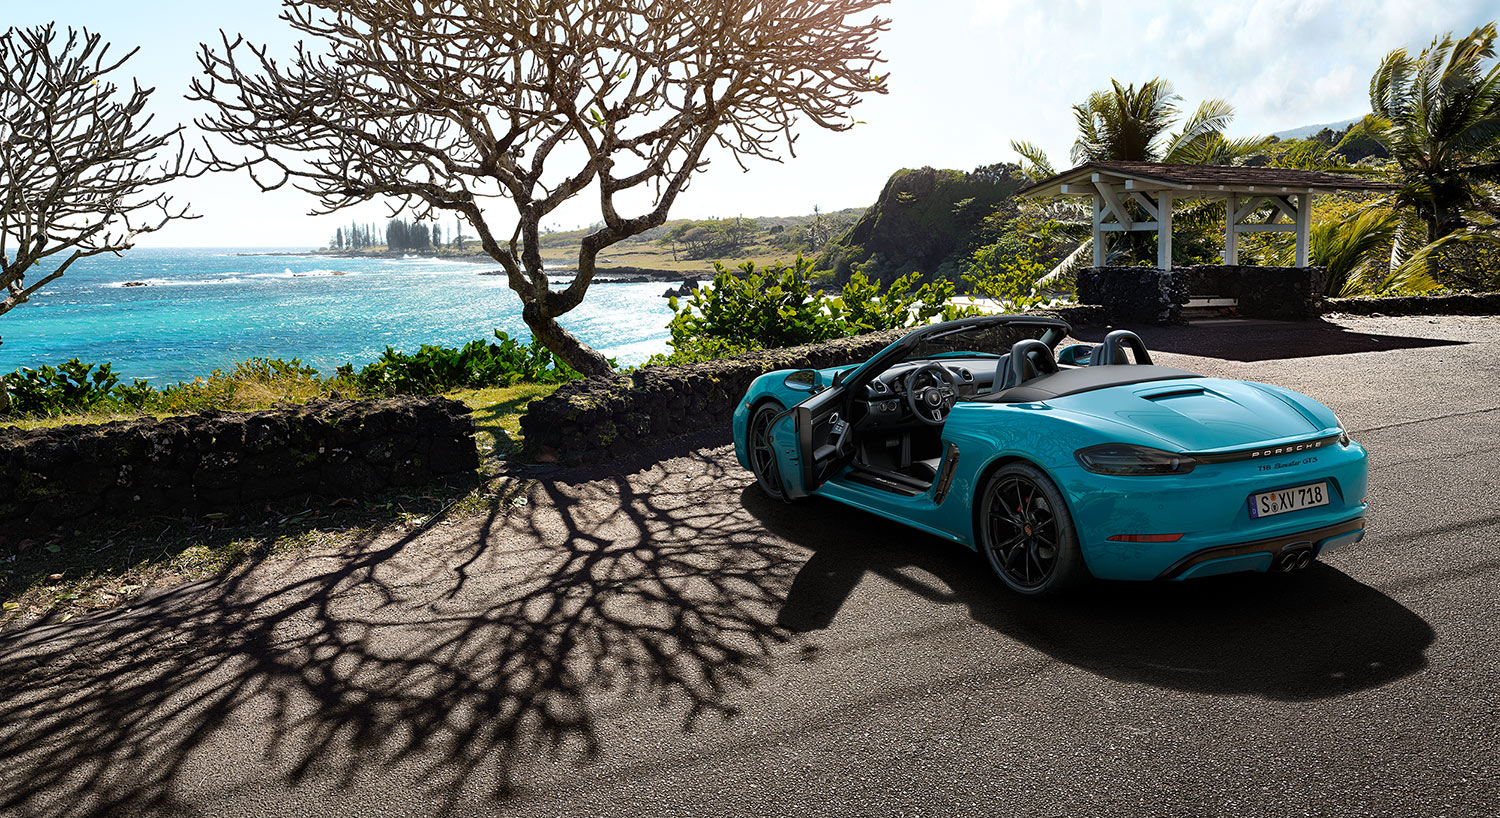 Porsche 718 GS Hawaii 9 by Thomas STROGALSKI